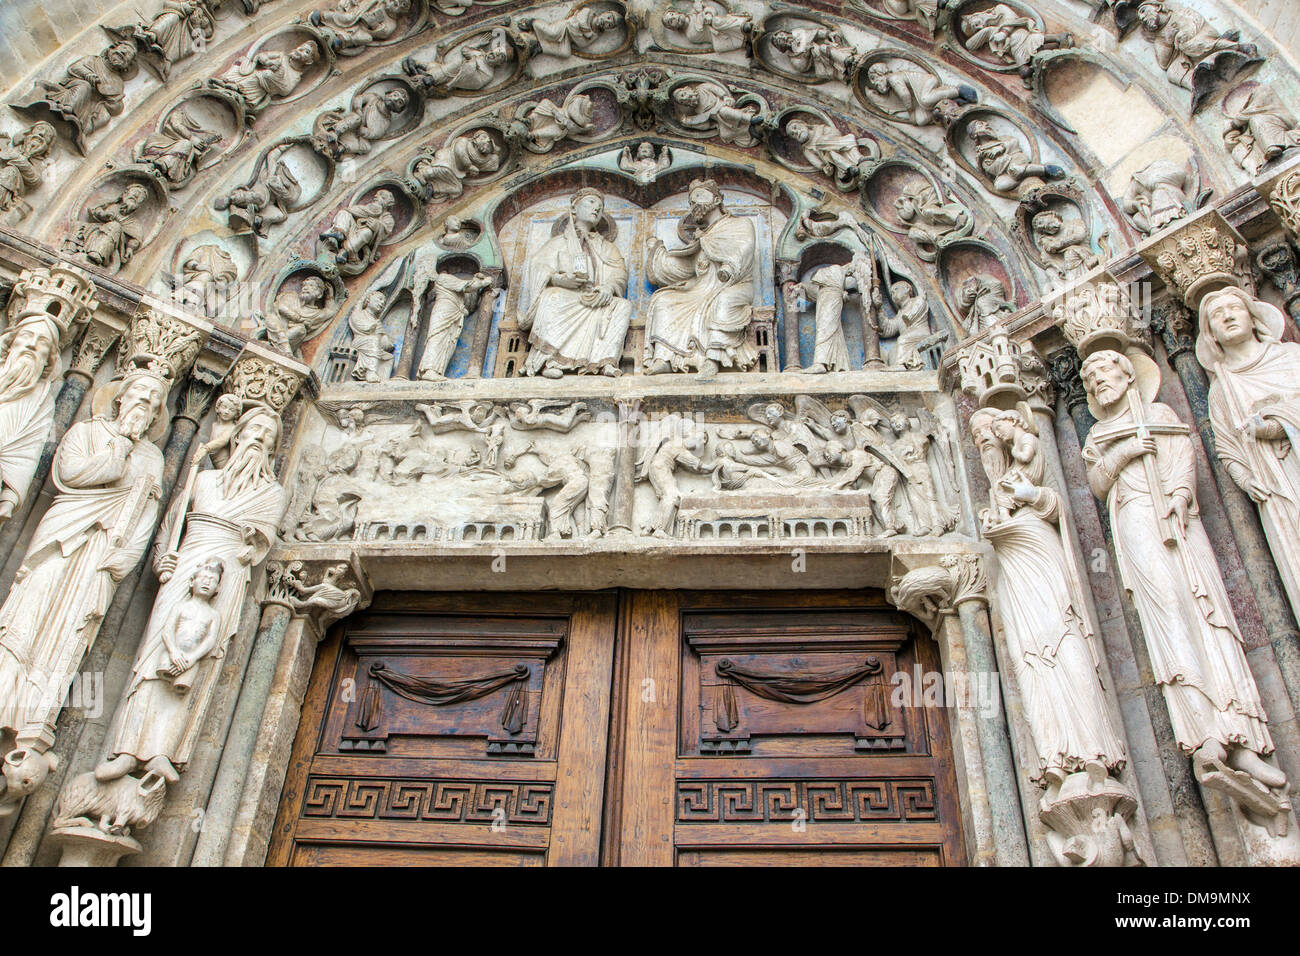 THE RESURRECTION AND THE CORONATION OF THE VIRGIN MARY, DECORATION ON THE MAIN DOOR OF THE SOUTH FACADE CONSERVING PART OF ITS 12TH CENTURY POLYCHROMY, MASTERPIECE CATHEDRAL NOTRE-DAME, SENLIS, OISE (60), FRANCE - Stock Image